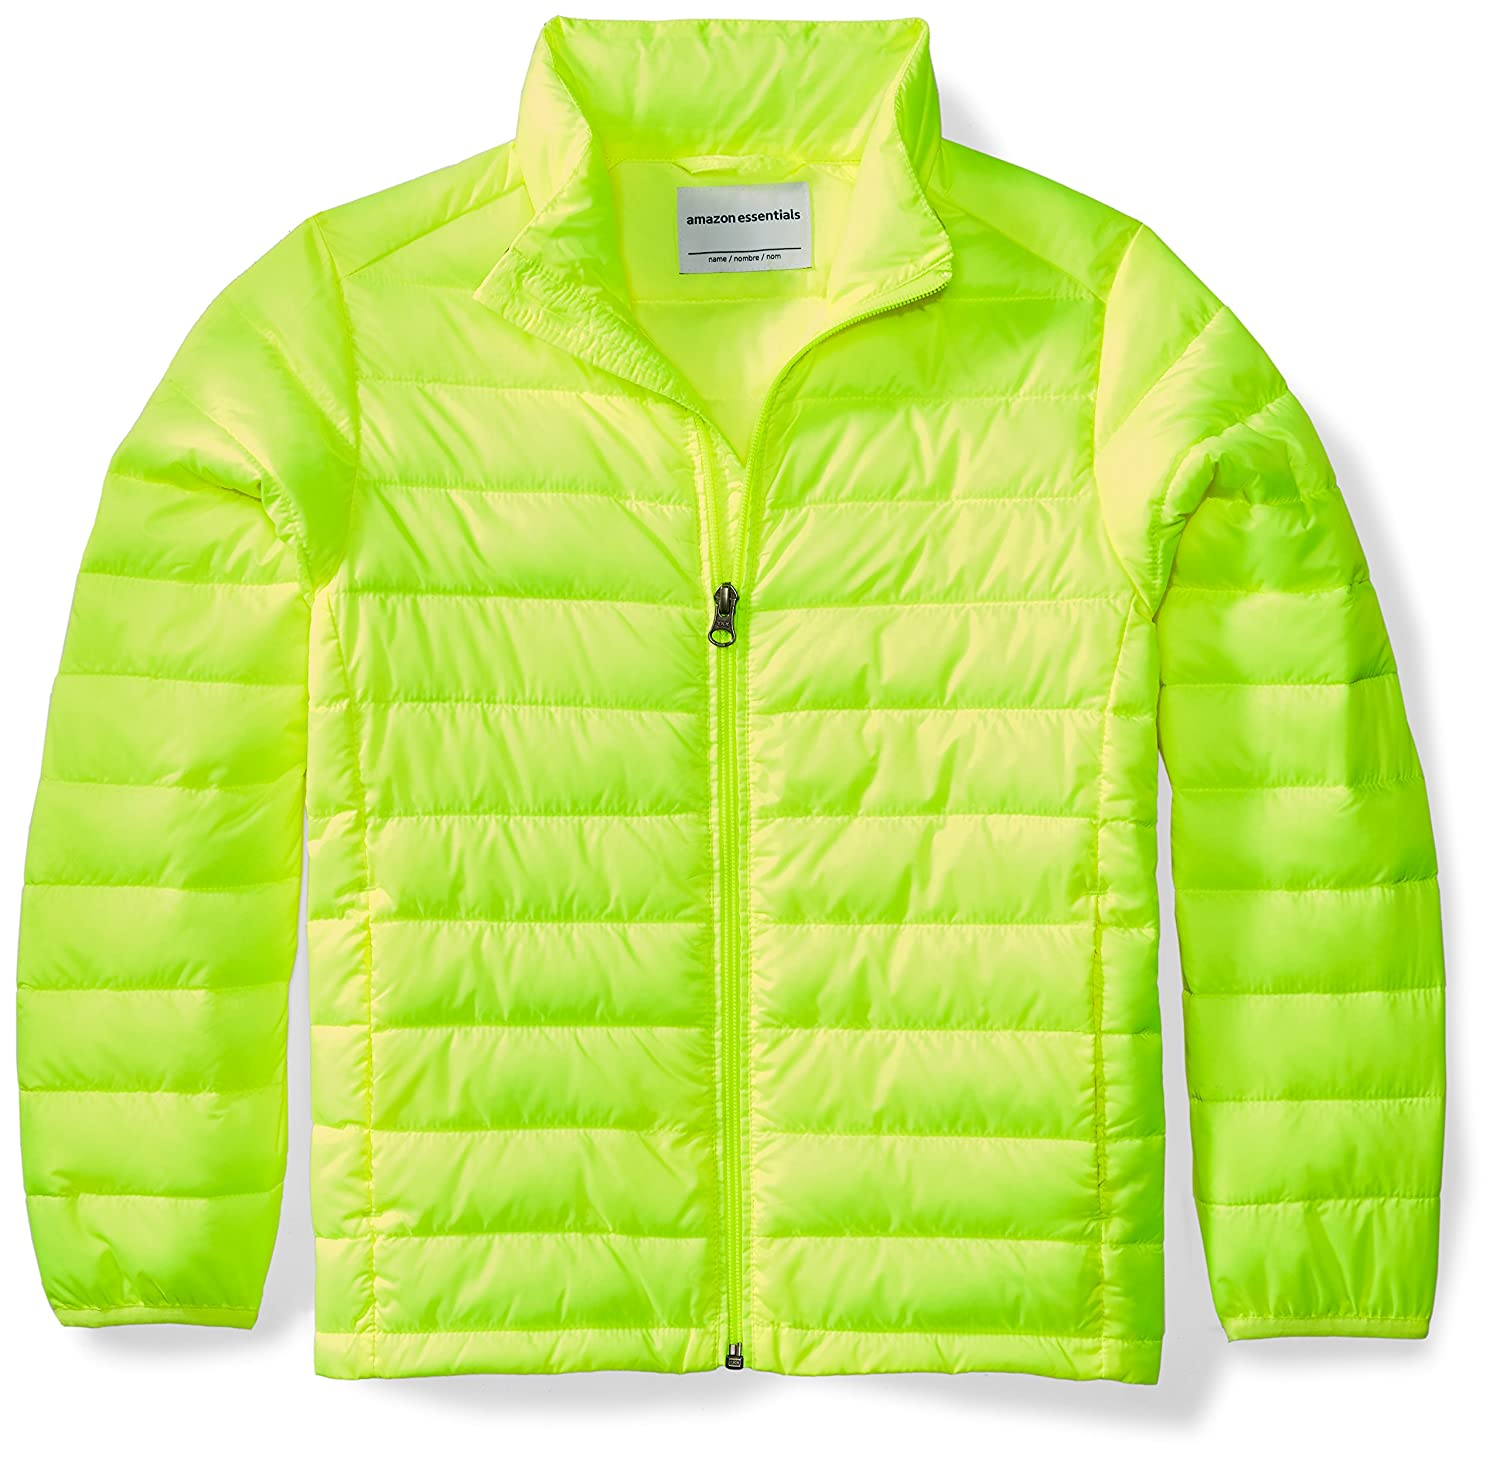 Amazon Essentials Boys' Lightweight Water-Resistant Packable Puffer Jacket B-S17AE10001